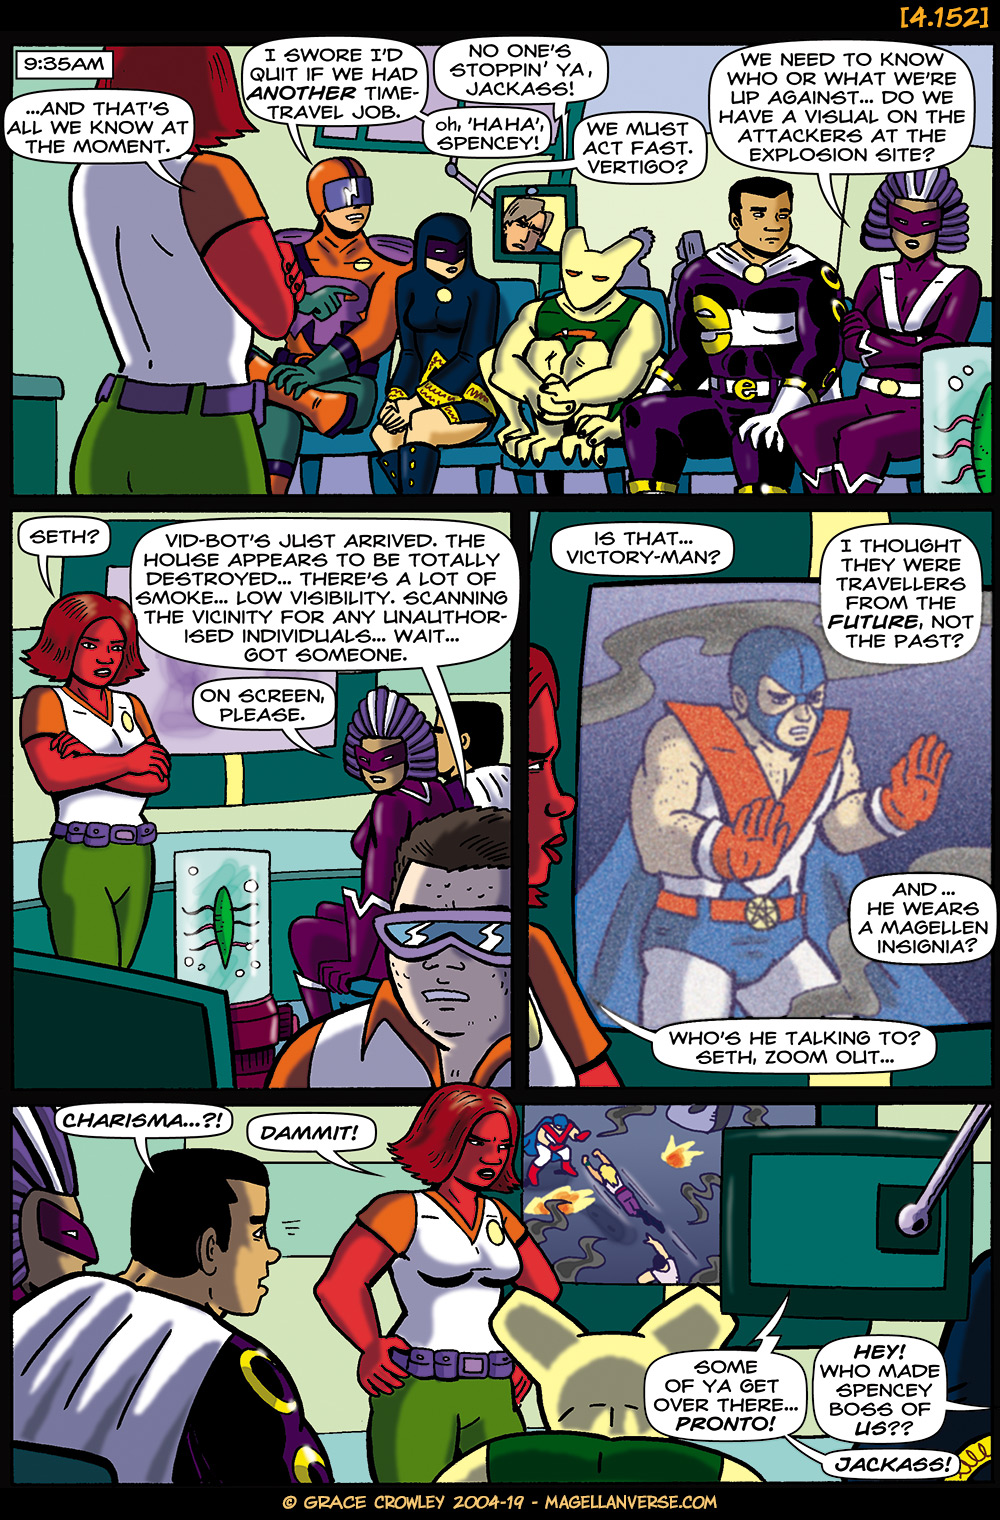 Page 4.152